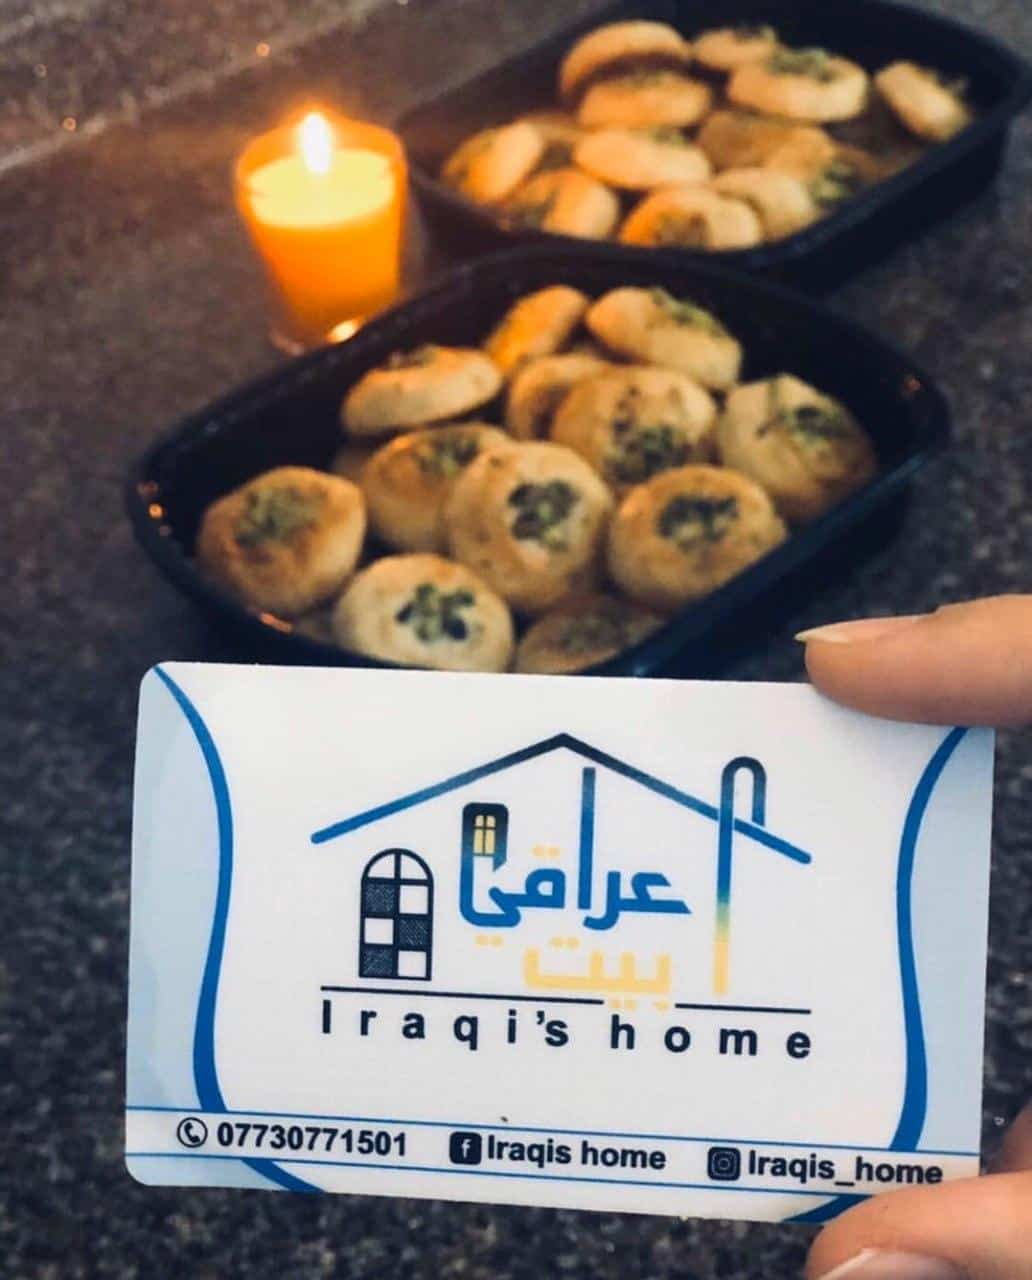 Iraqis Home businesses in Karbala cookies